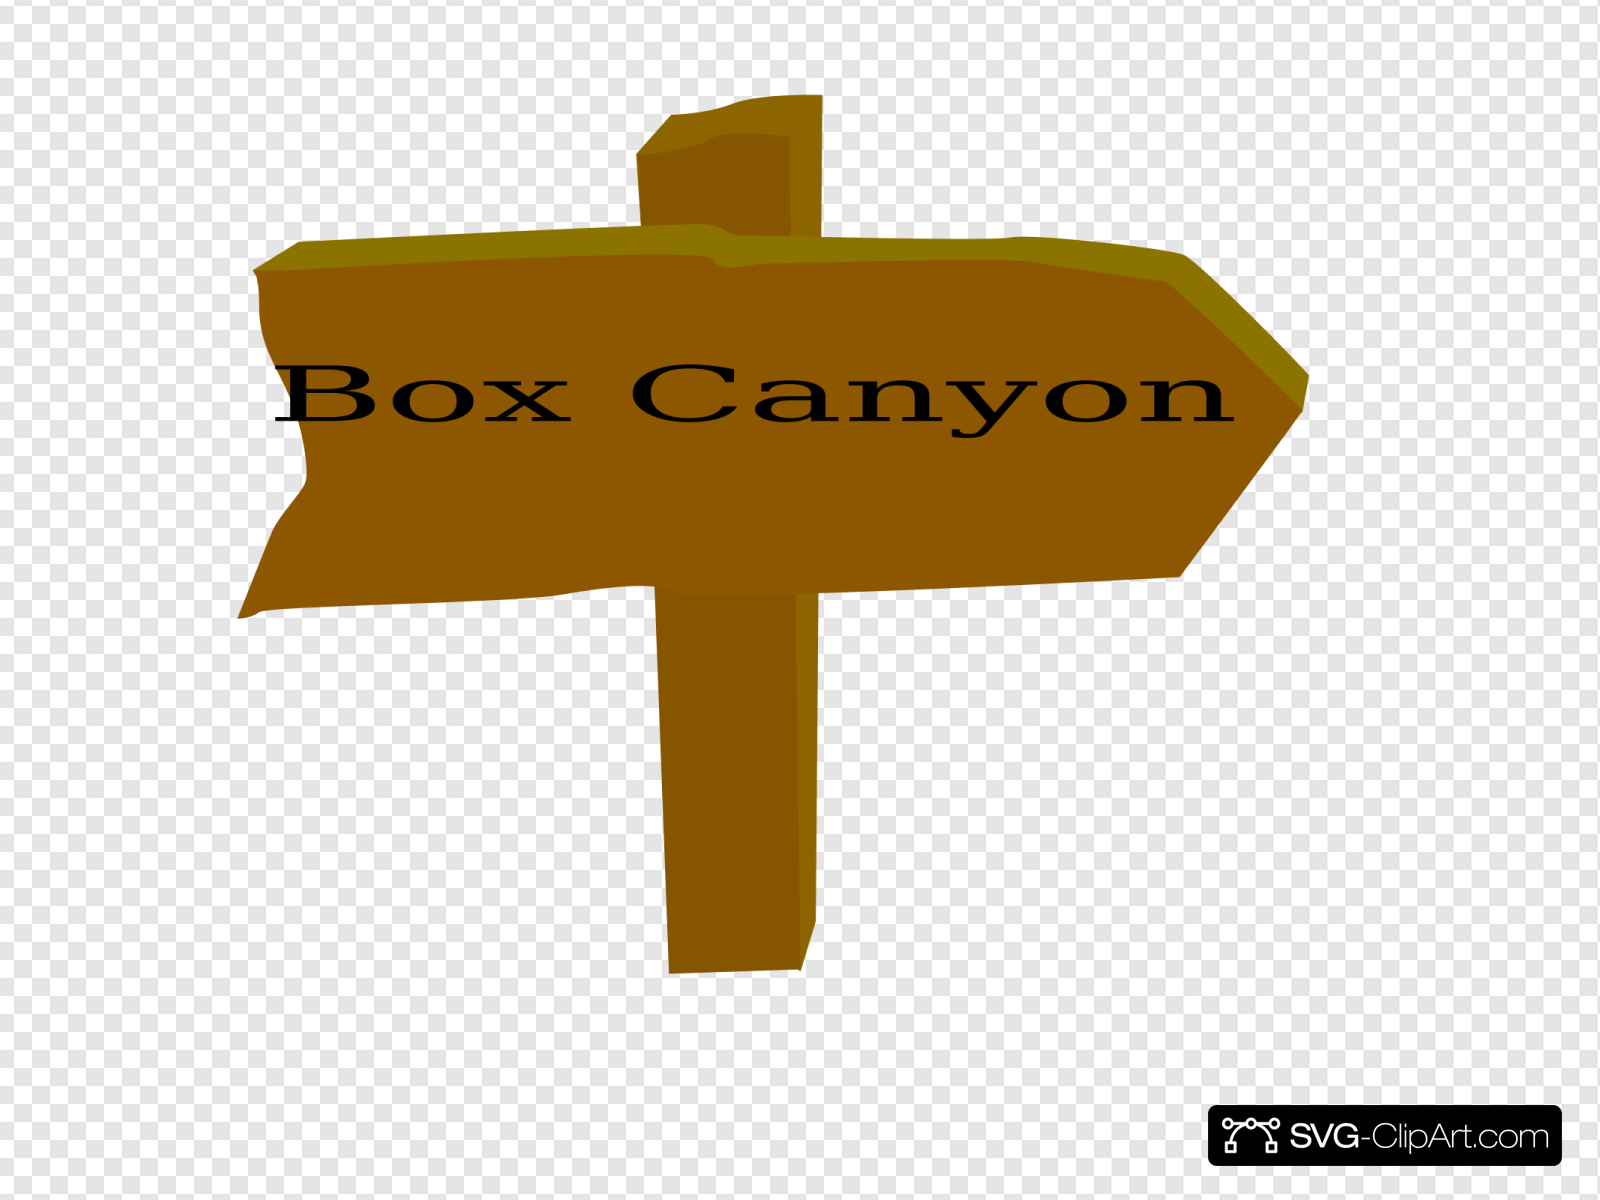 Box Canyon Trail Sign Clip art, Icon and SVG.